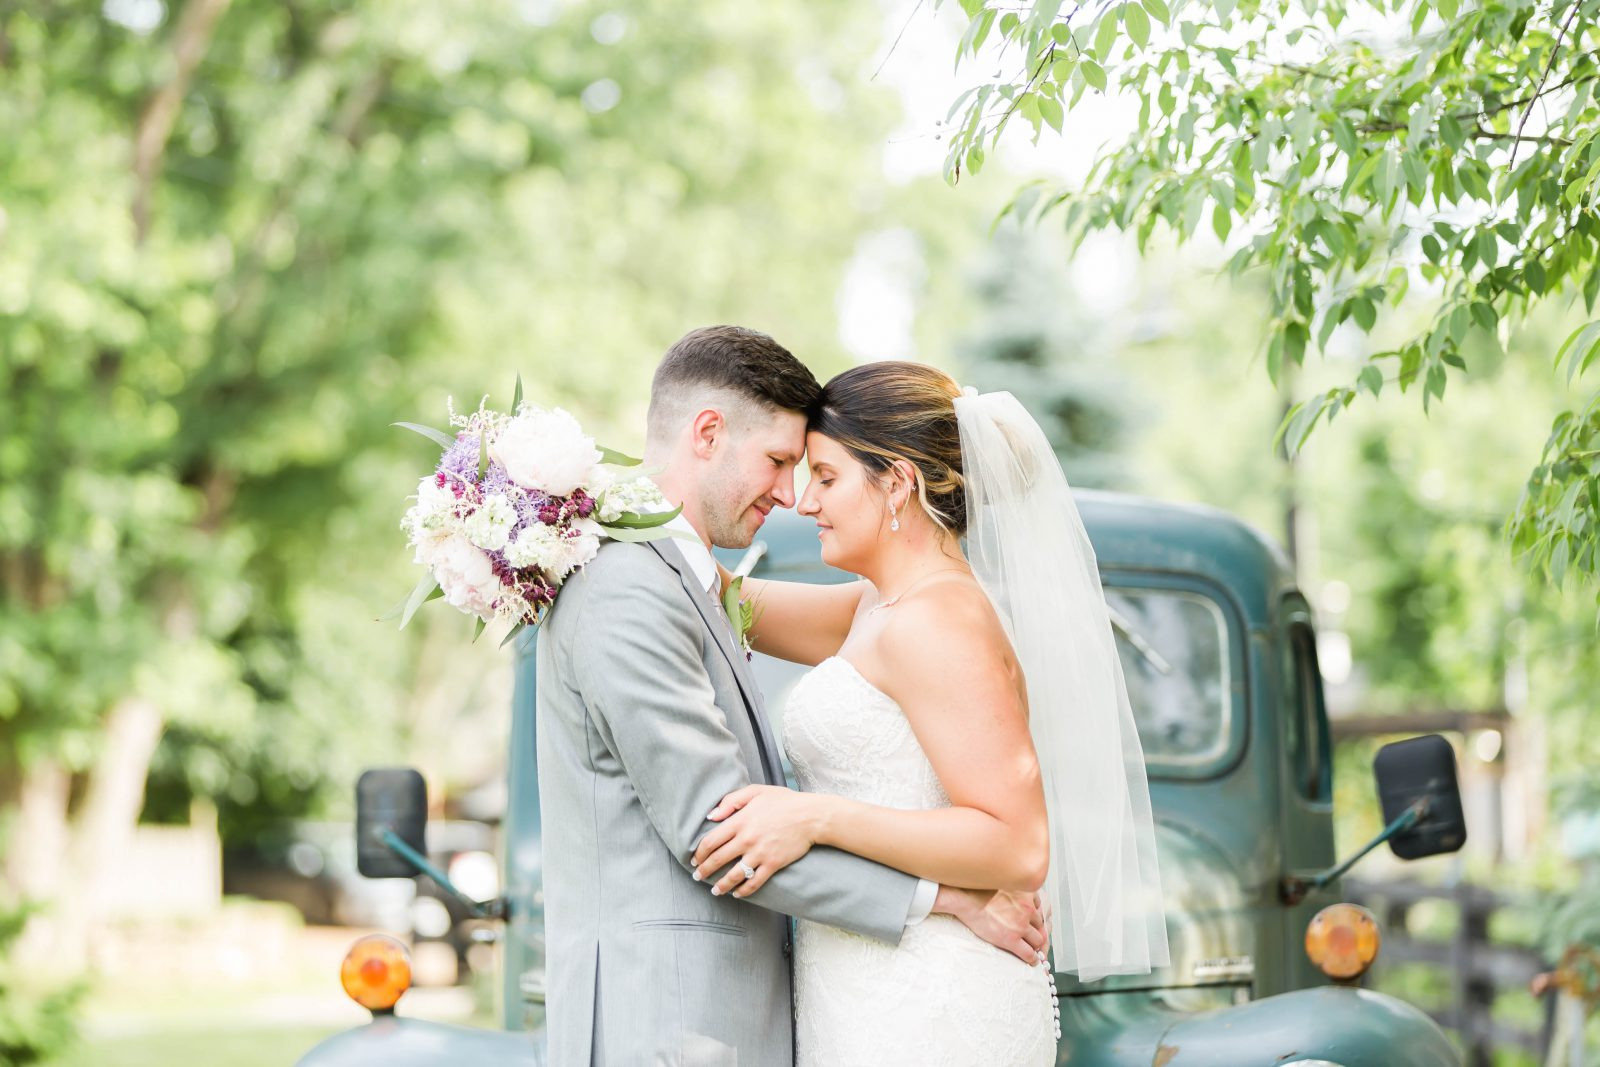 rivercrest-farm-summer-wedding-loren-jackson-photography-89